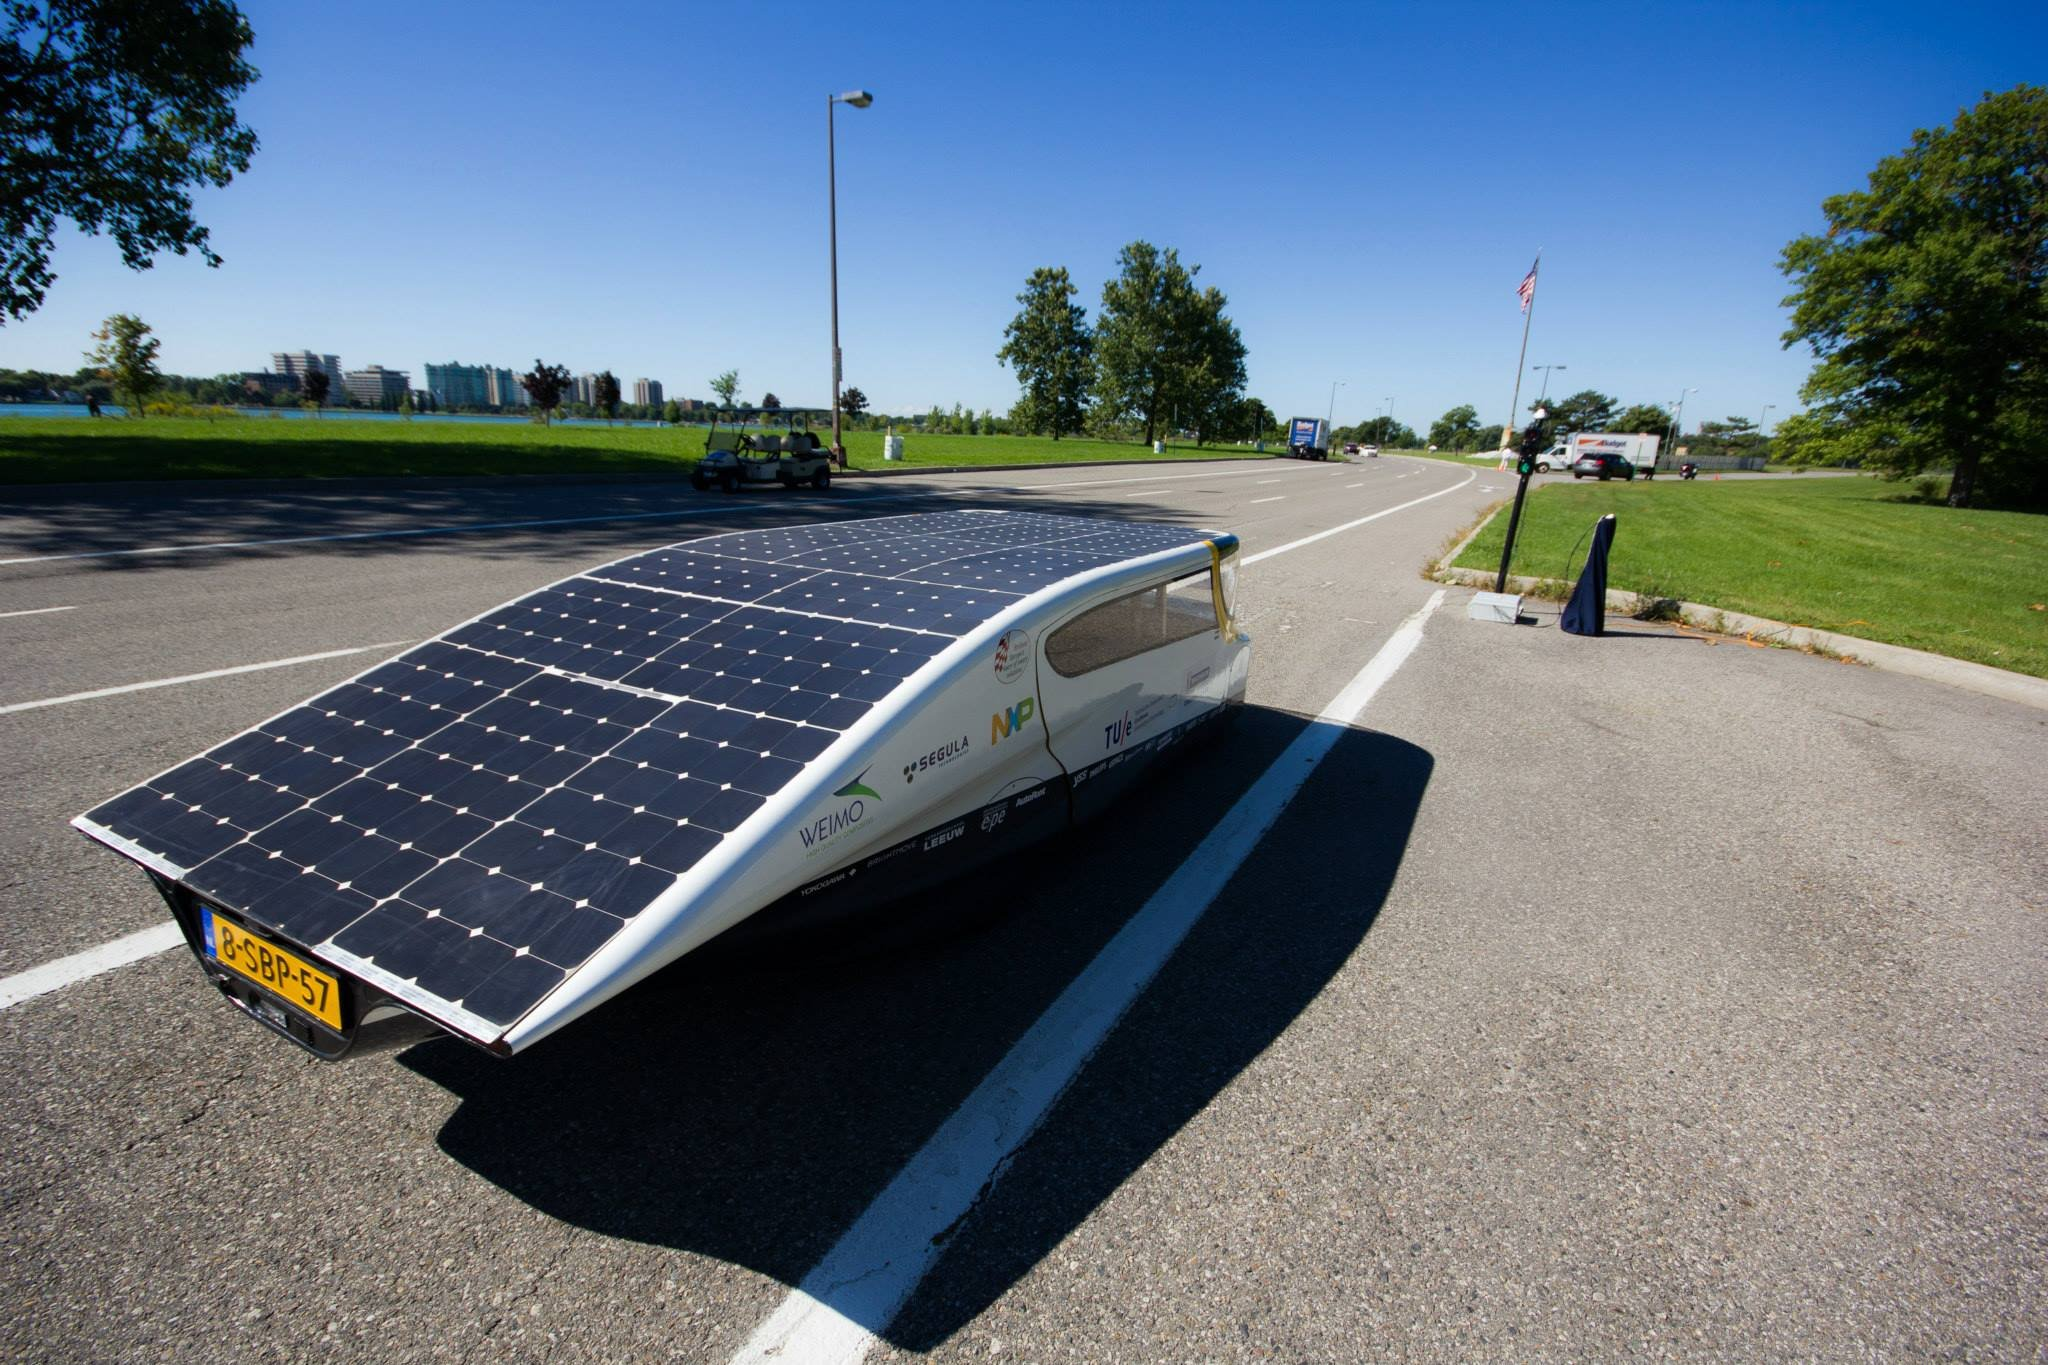 solar power cars You can build your own solar powered cars and race them just like in the gm solar car sunrayce main activity build a custom-designed vehicle propelled by photovoltaic cells materials: 4 small solar cells small 1 1/2 volt motor propeller 1.